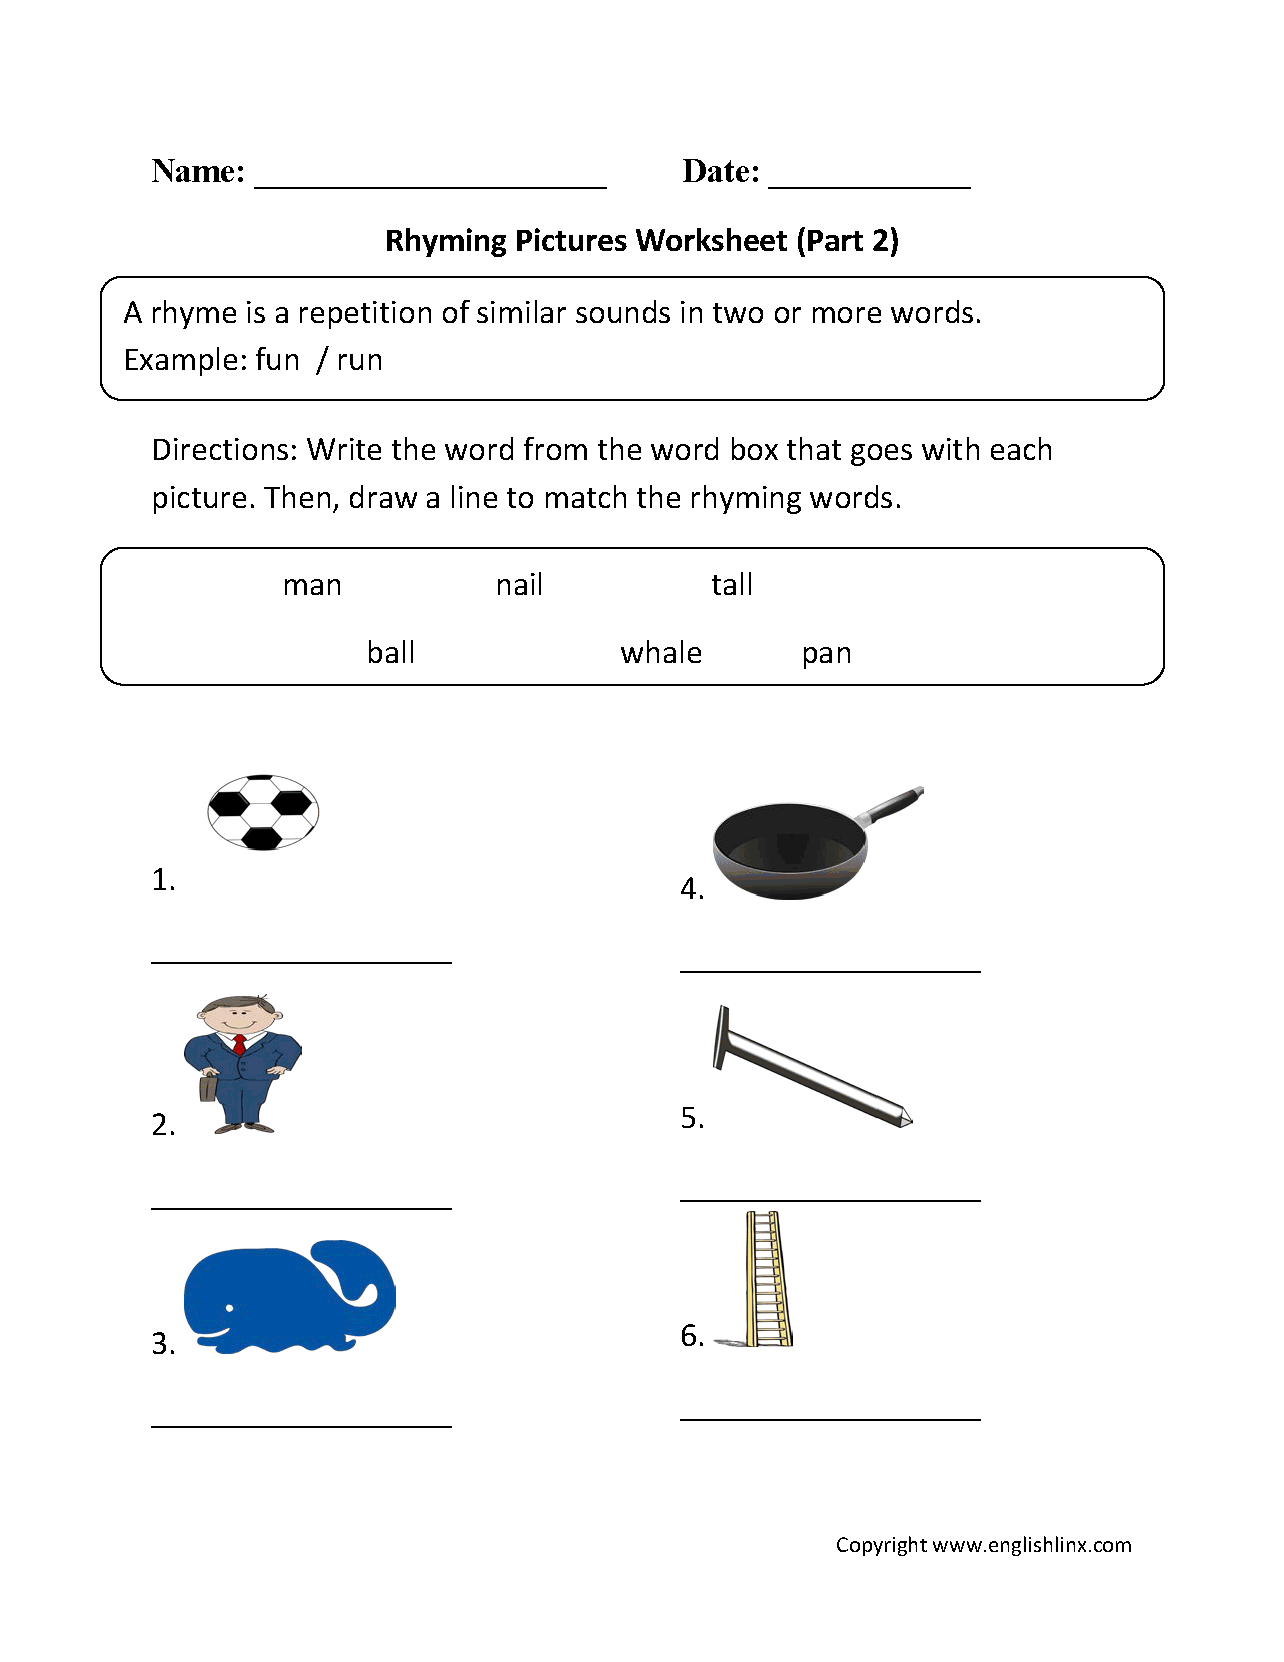 Rhyming Pictures Worksheets Part 2